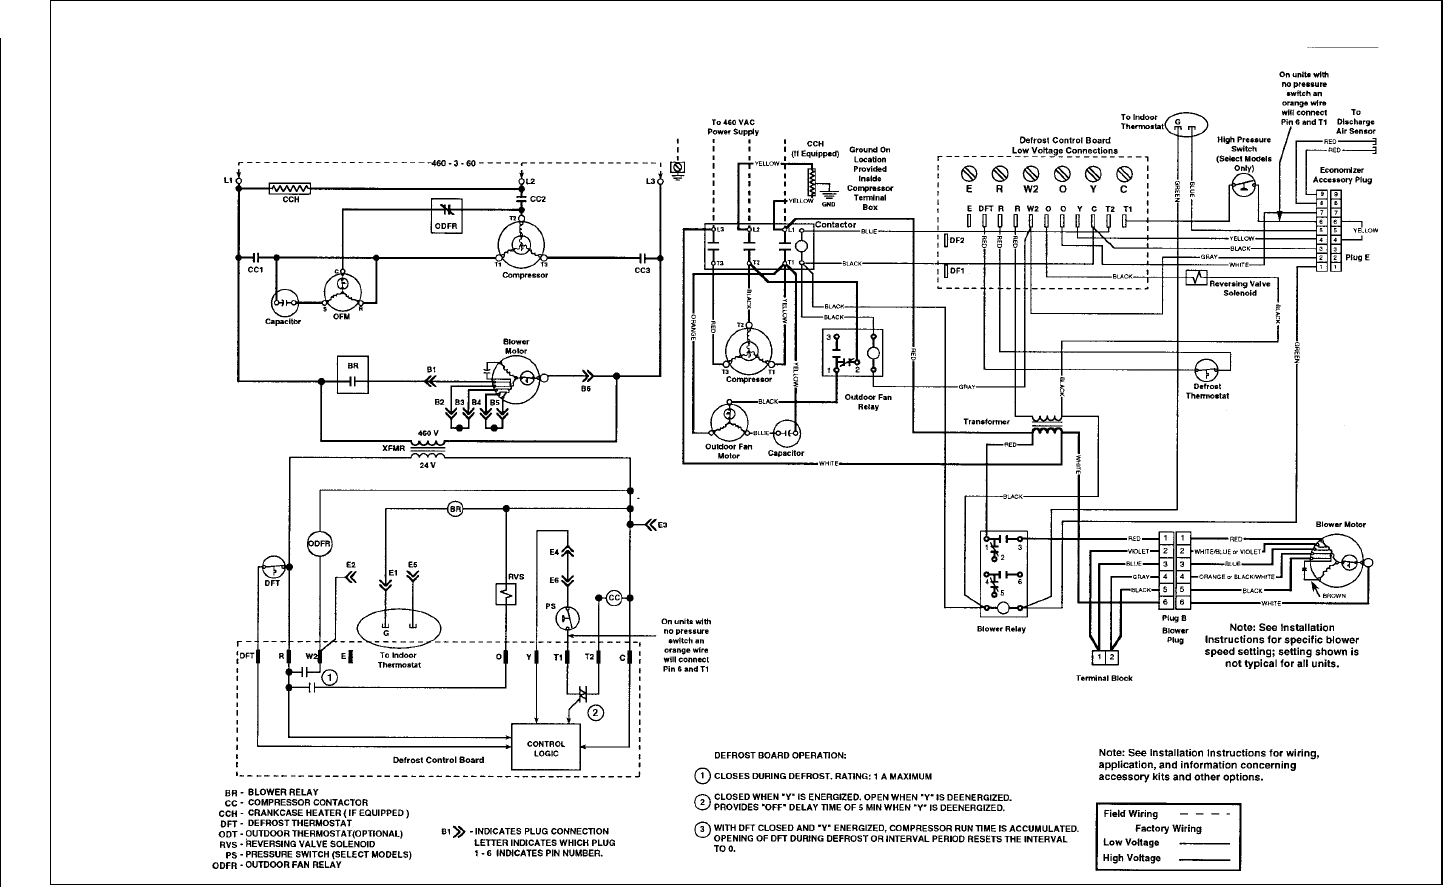 wiring diagrams for motor homes with Wiring Diagram Intertherm Air Conditioner on Fleetwood Motorhomes Wiring Diagrams as well Cutaway View Of Synchronous Ac together with Wind Turbine Generator Schematic additionally What Types Of Electrical Outlets Are Found In A Typical Home In The Usa besides Testing Your Telephone Service.